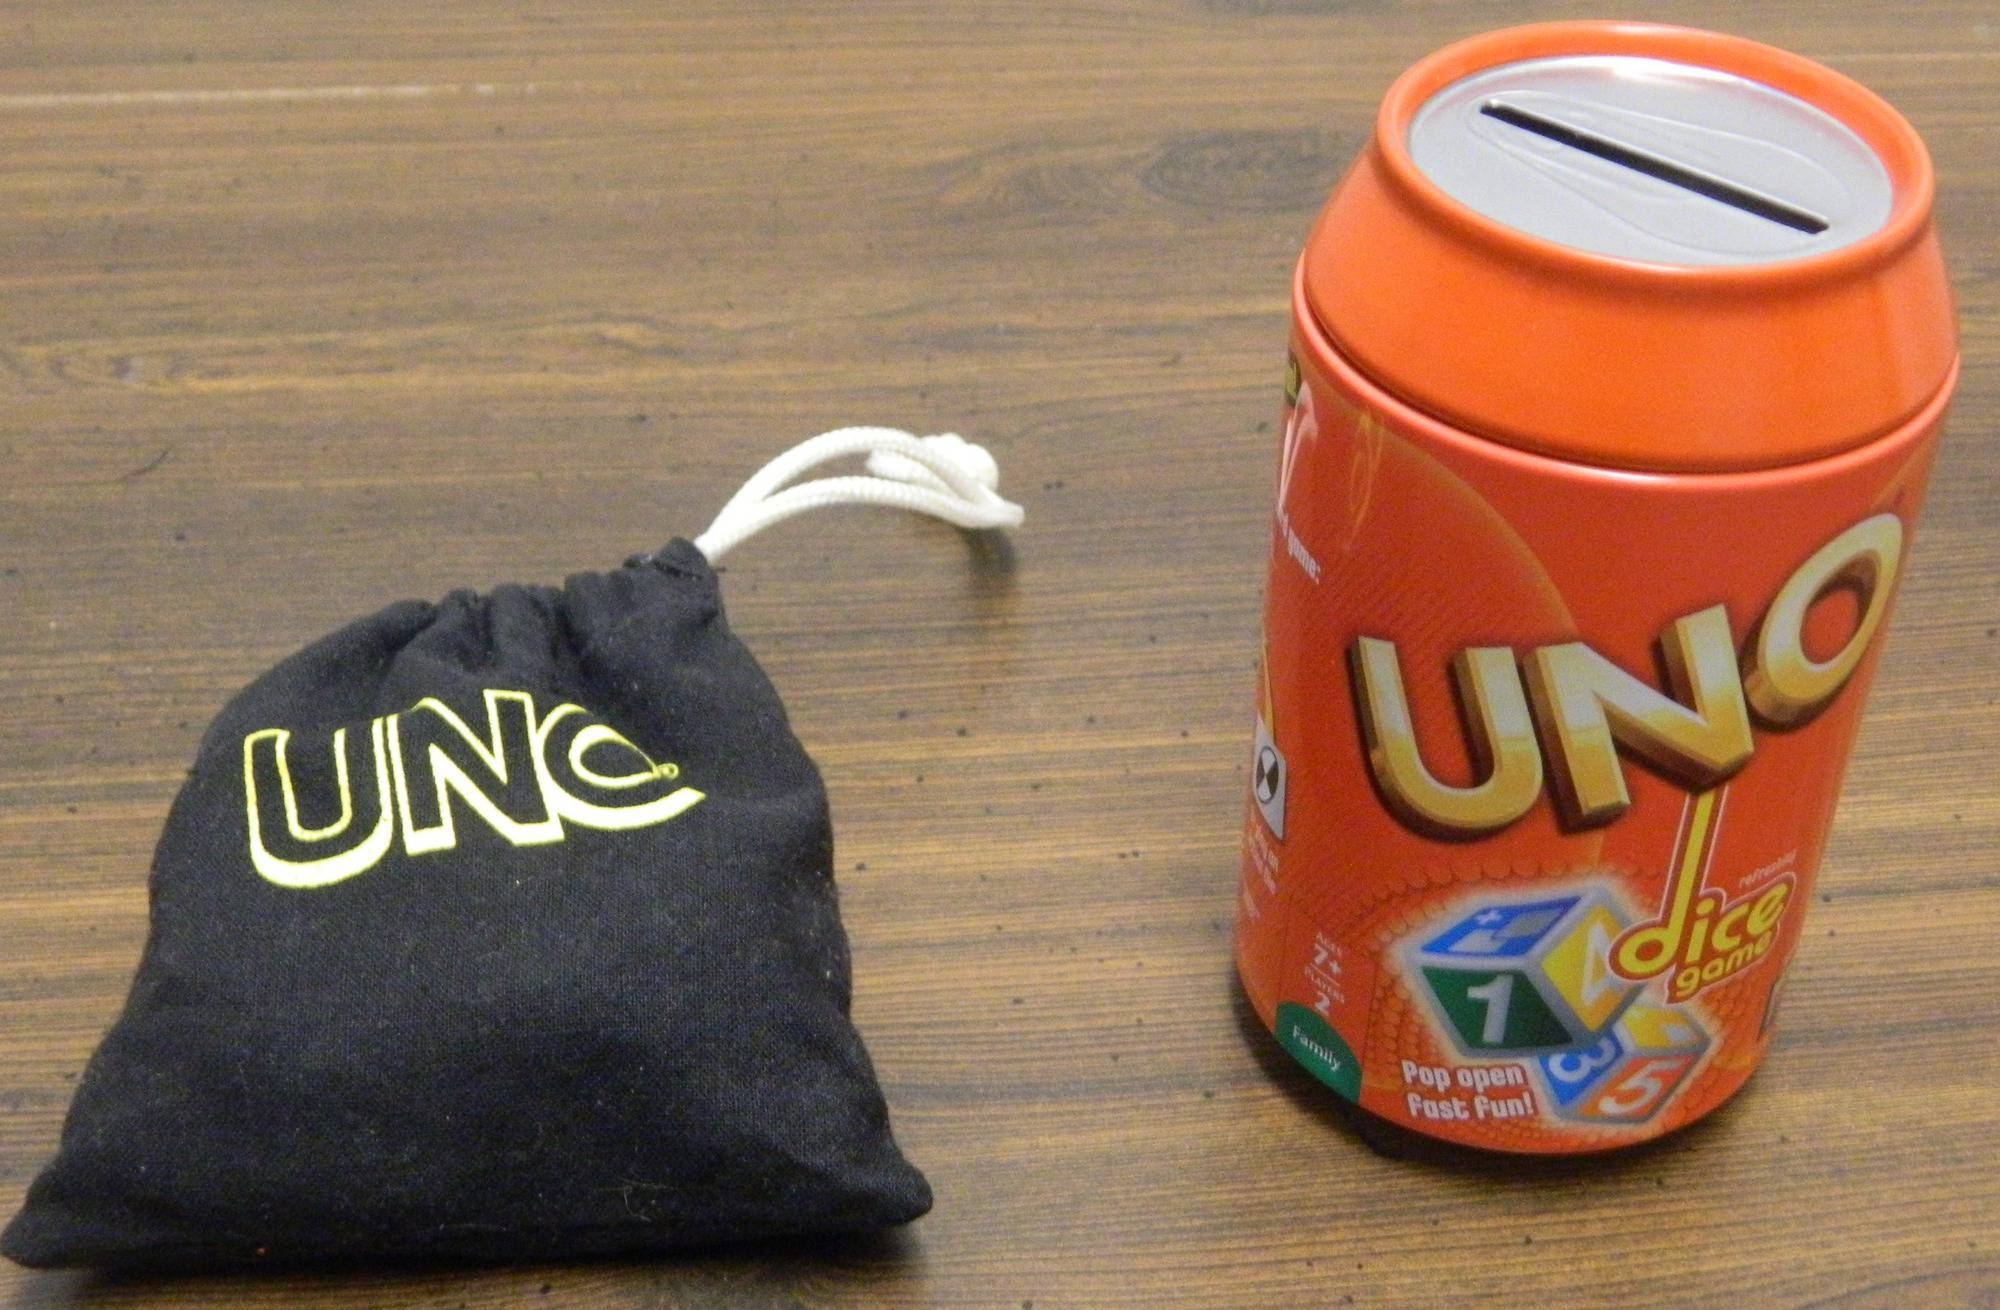 Box for UNO Dice